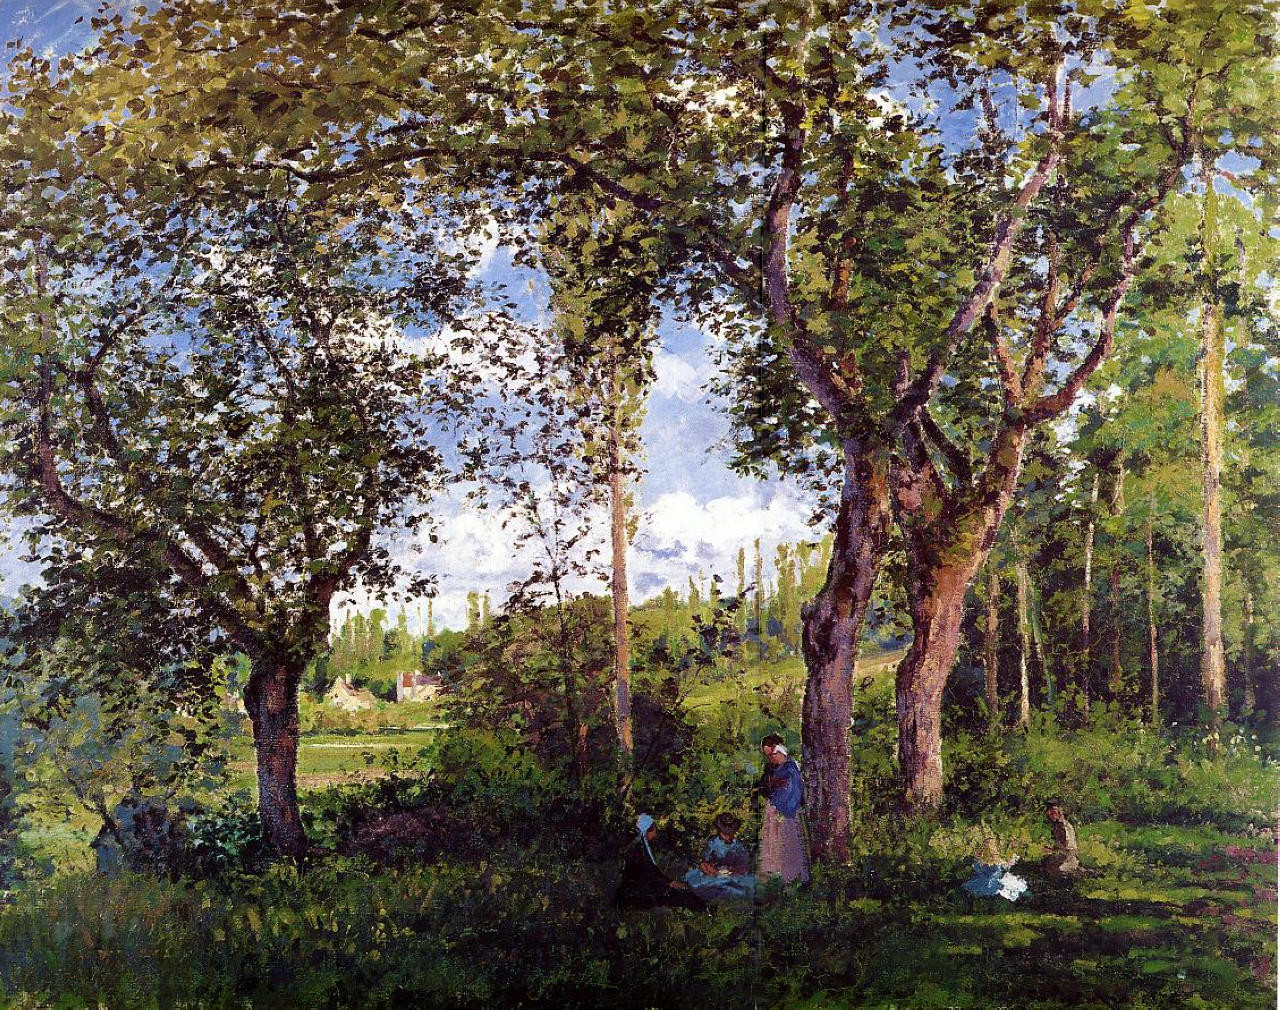 Landscape with Strollers Relaxing under the Trees by Camille Pissarro, 1872